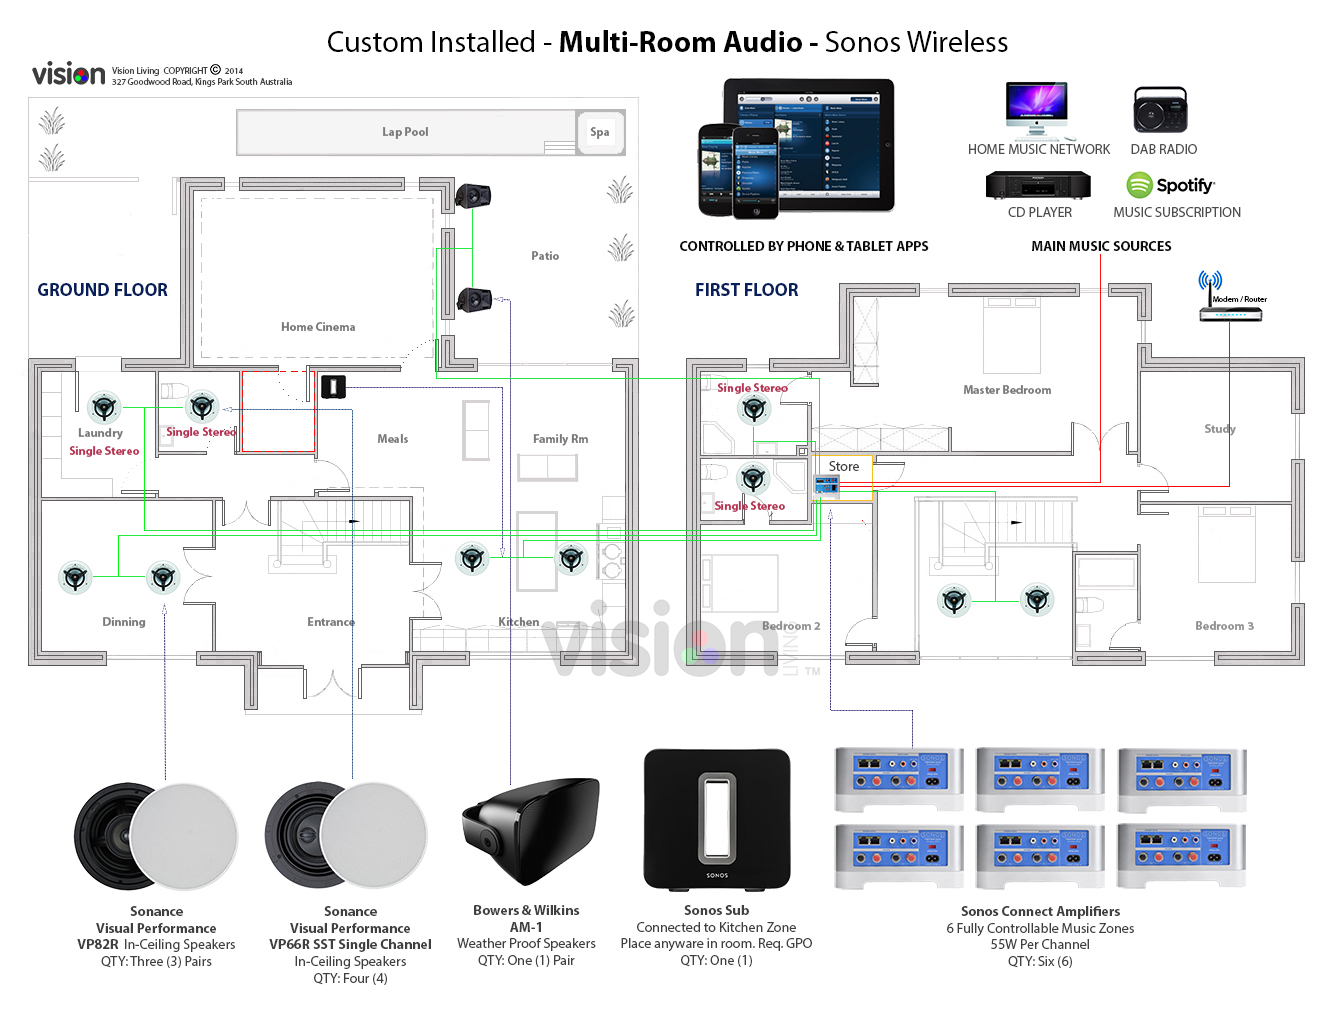 Sonos Wiring Diagram Electrical Diagrams Schematics Home Theater Subwoofer Another Blog About U2022